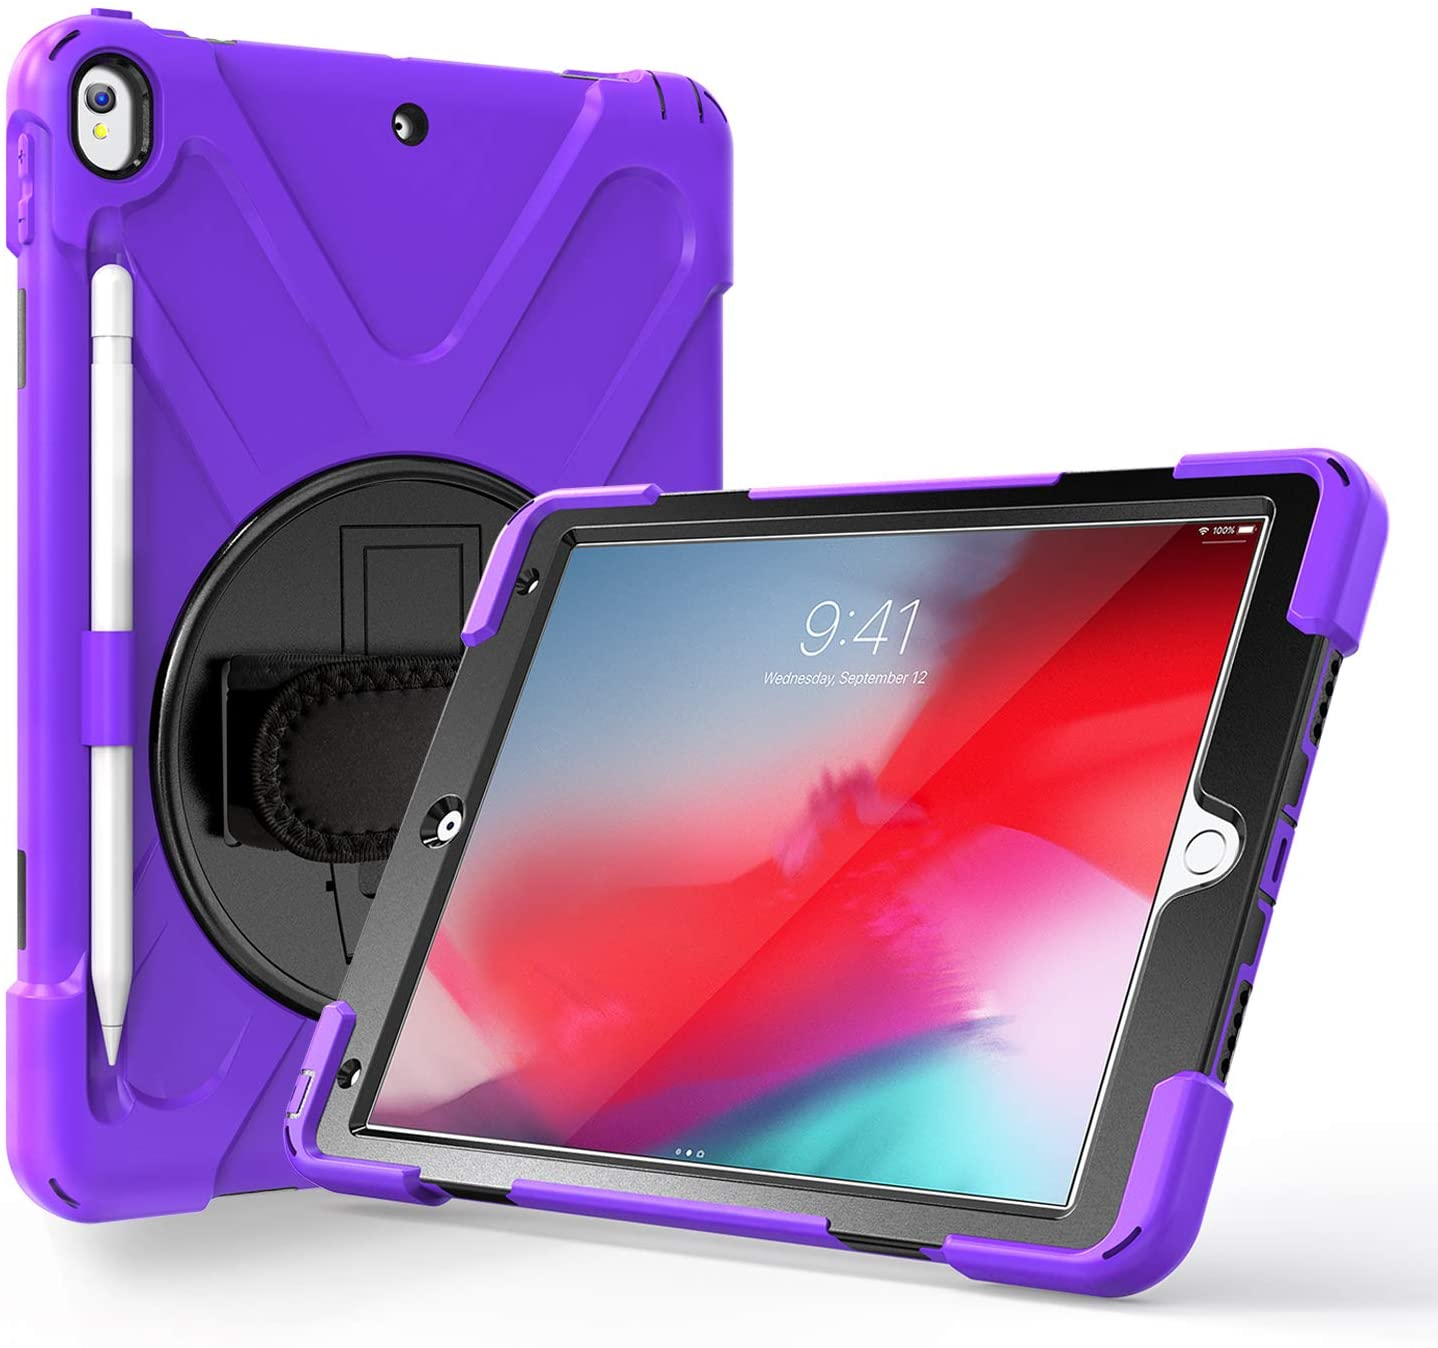 SIBEITU ipad Air 3 Case 2019 with Handle, Full Body Protection Rugged Case Cover with 360 Degree Kickstand, Pencil Holder for iPad Pro 10.5 Case 2017 (A1709/ A1701)-Kids Purple